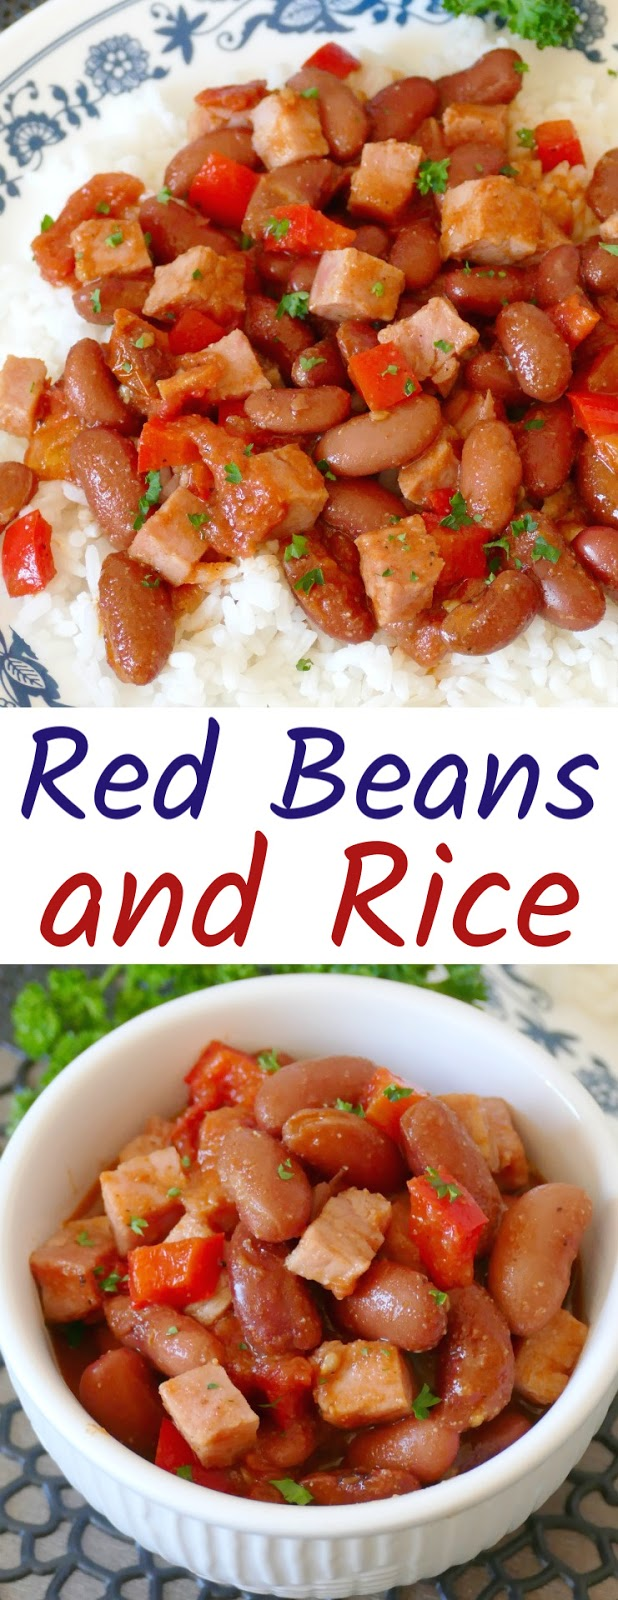 This simple homemade red beans and rice can be made with ham or smoked turkey. It uses fridge and pantry staples like bell pepper, fresh tomatoes, spices, broth and canned beans and is so hearty and absolutely delicious! Great for meal planning and budget friendly!